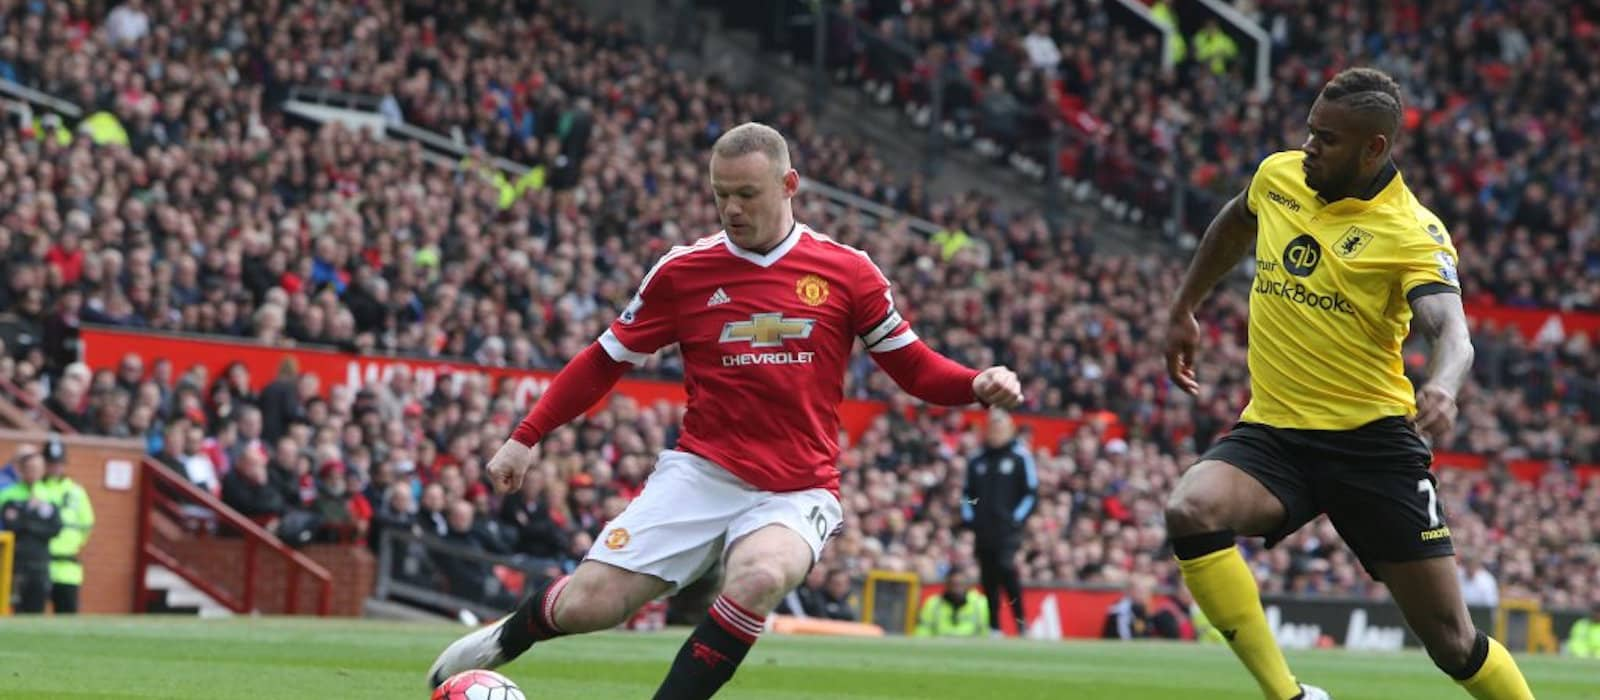 Wayne Rooney reveals how Louis van Gaal reacted to Phil Bardsley boxing incident in 2015